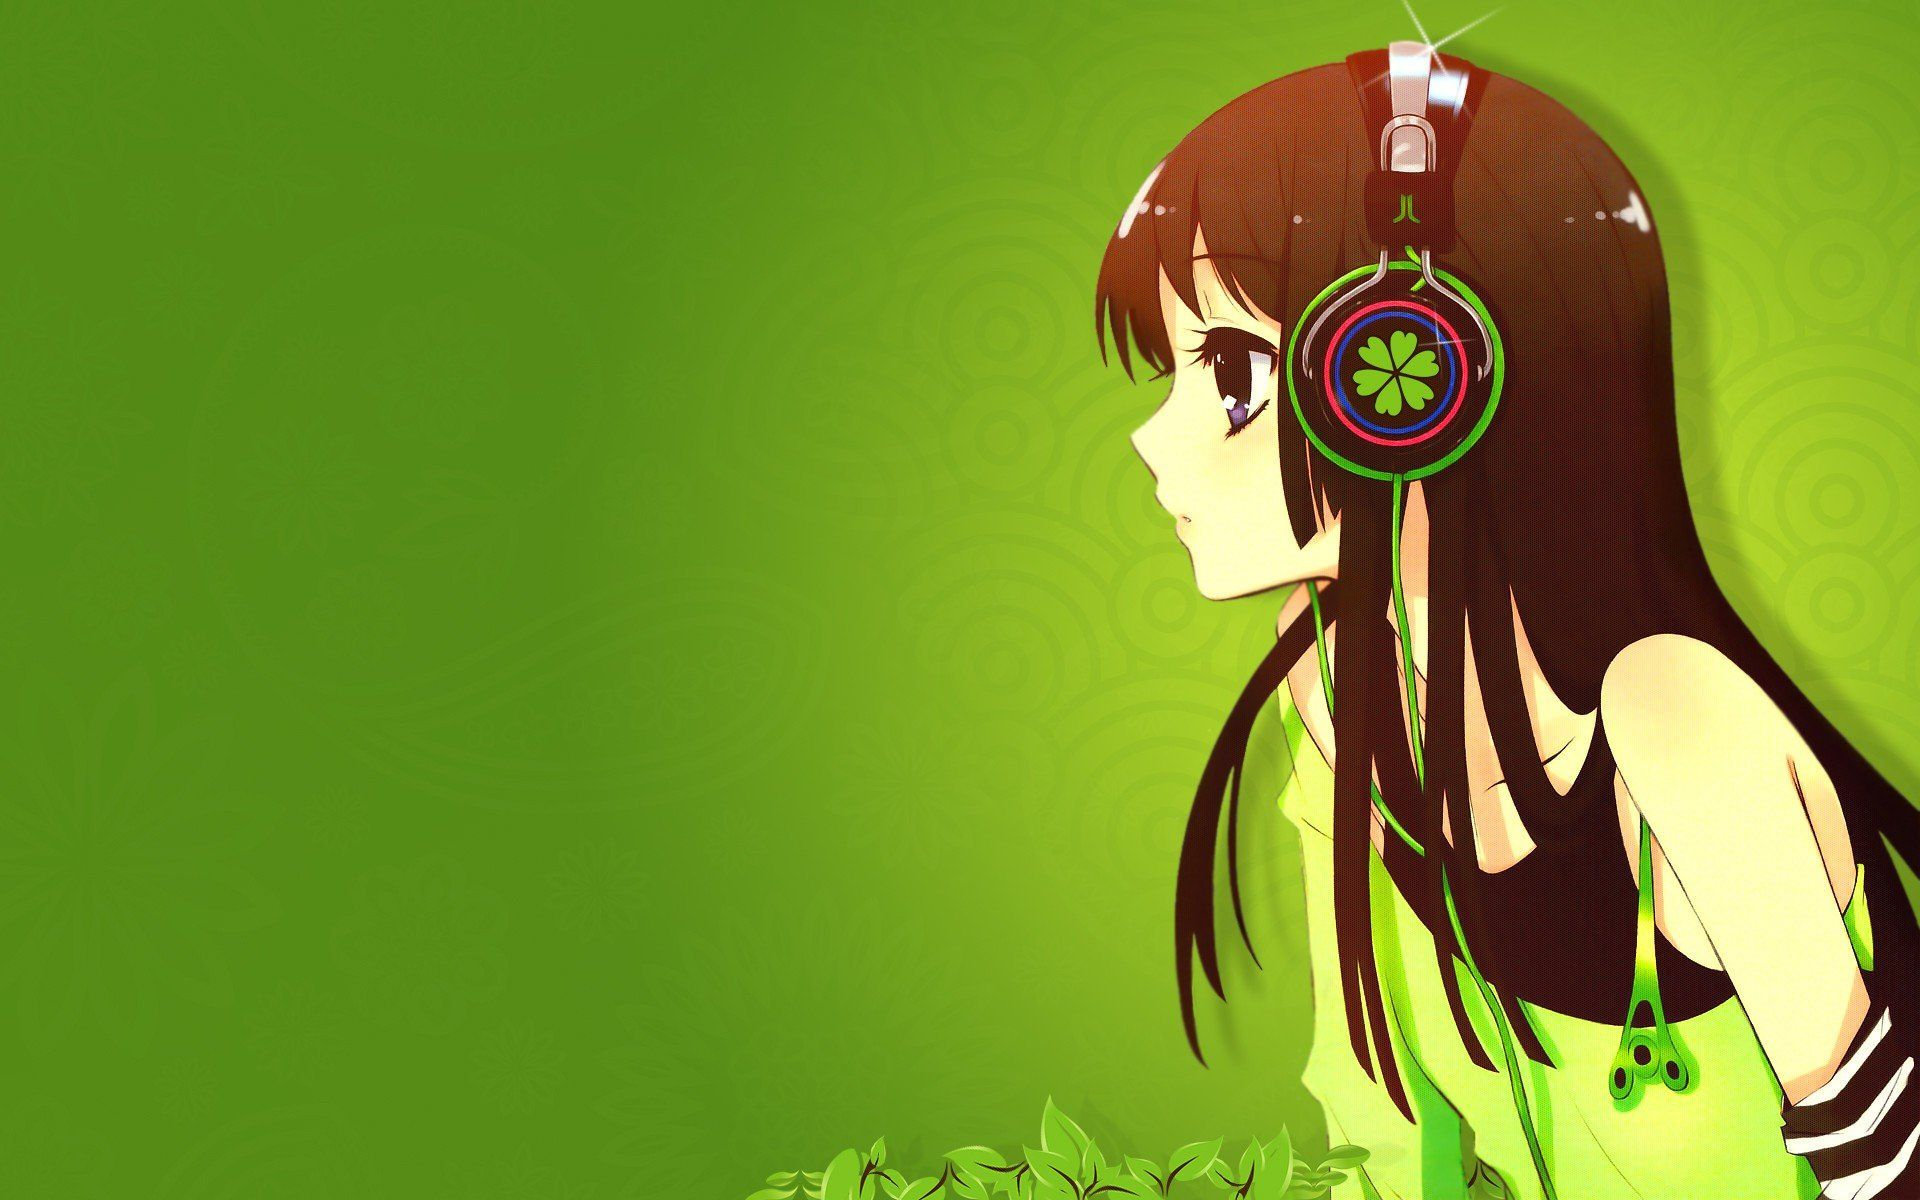 Anime Girl Headphones Wallpaper Posted By Michelle Sellers